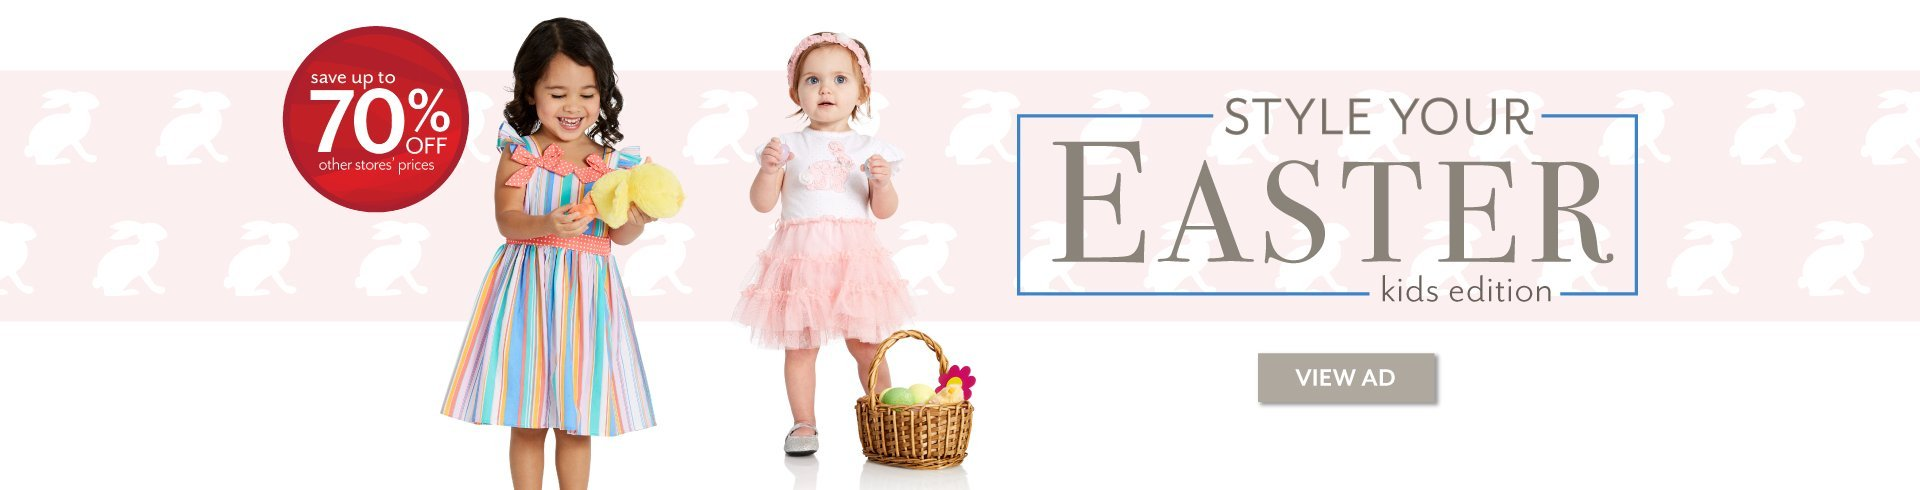 Shop the latest trends in Easter Fashion at Bealls Outlet